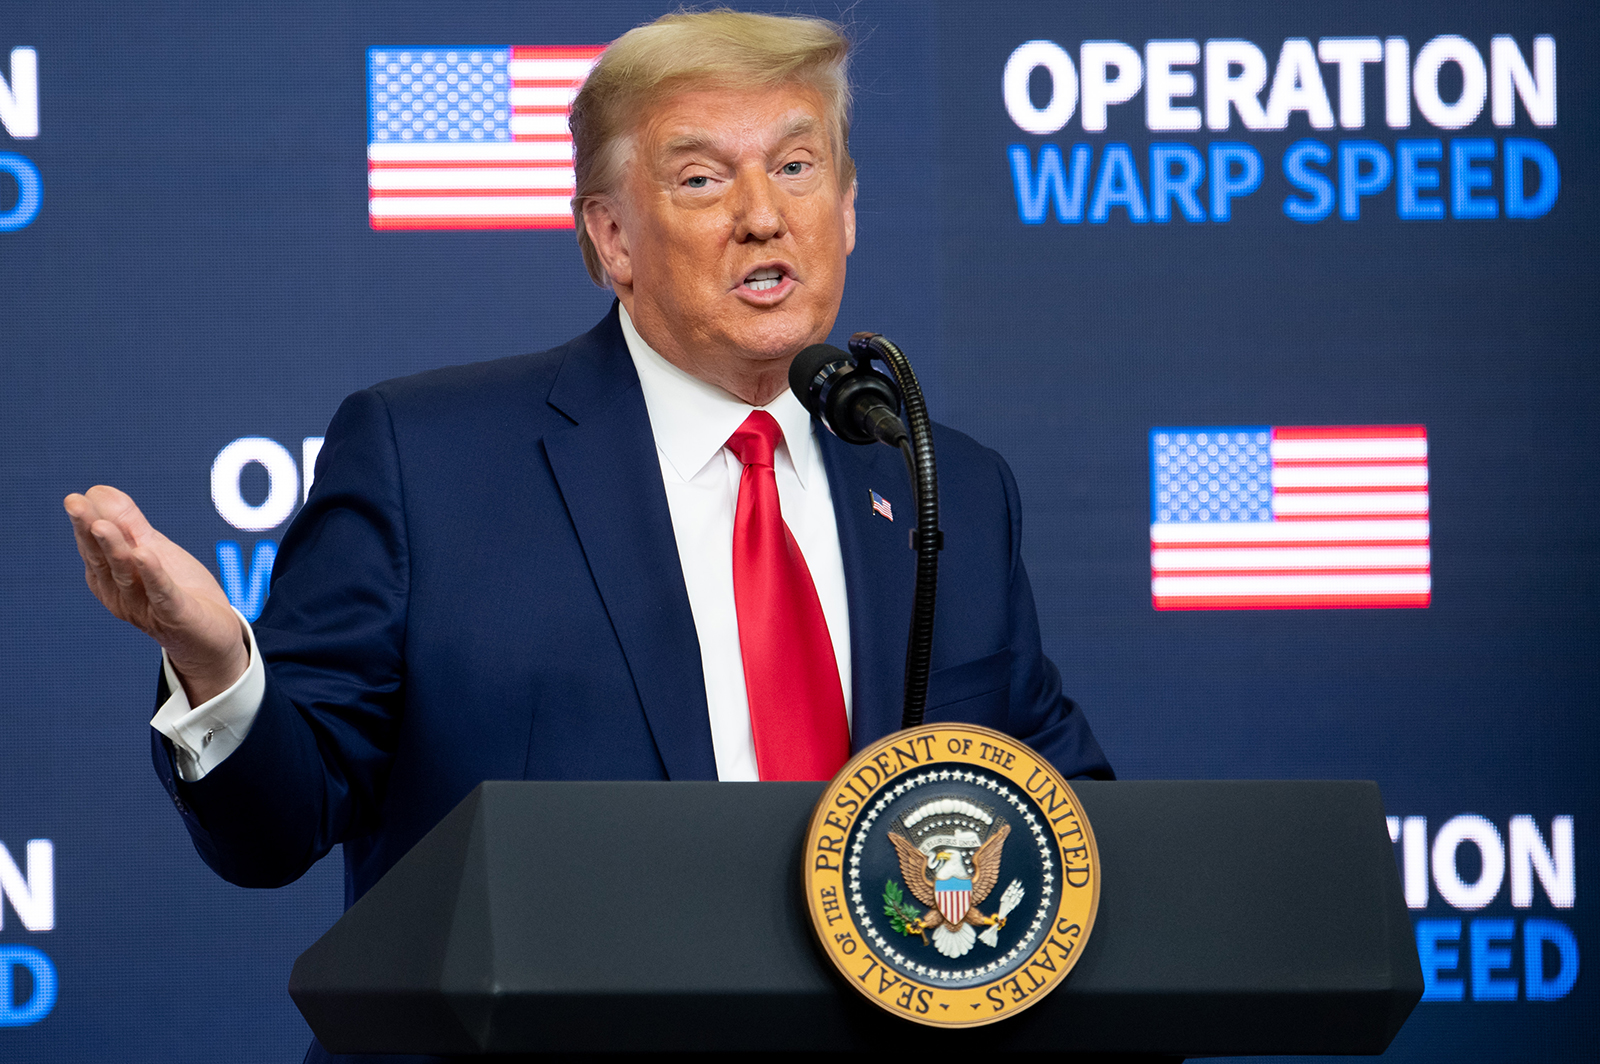 US President Donald Trump speaks during the Operation Warp Speed Vaccine Summit in Washington, DC, on December 8.